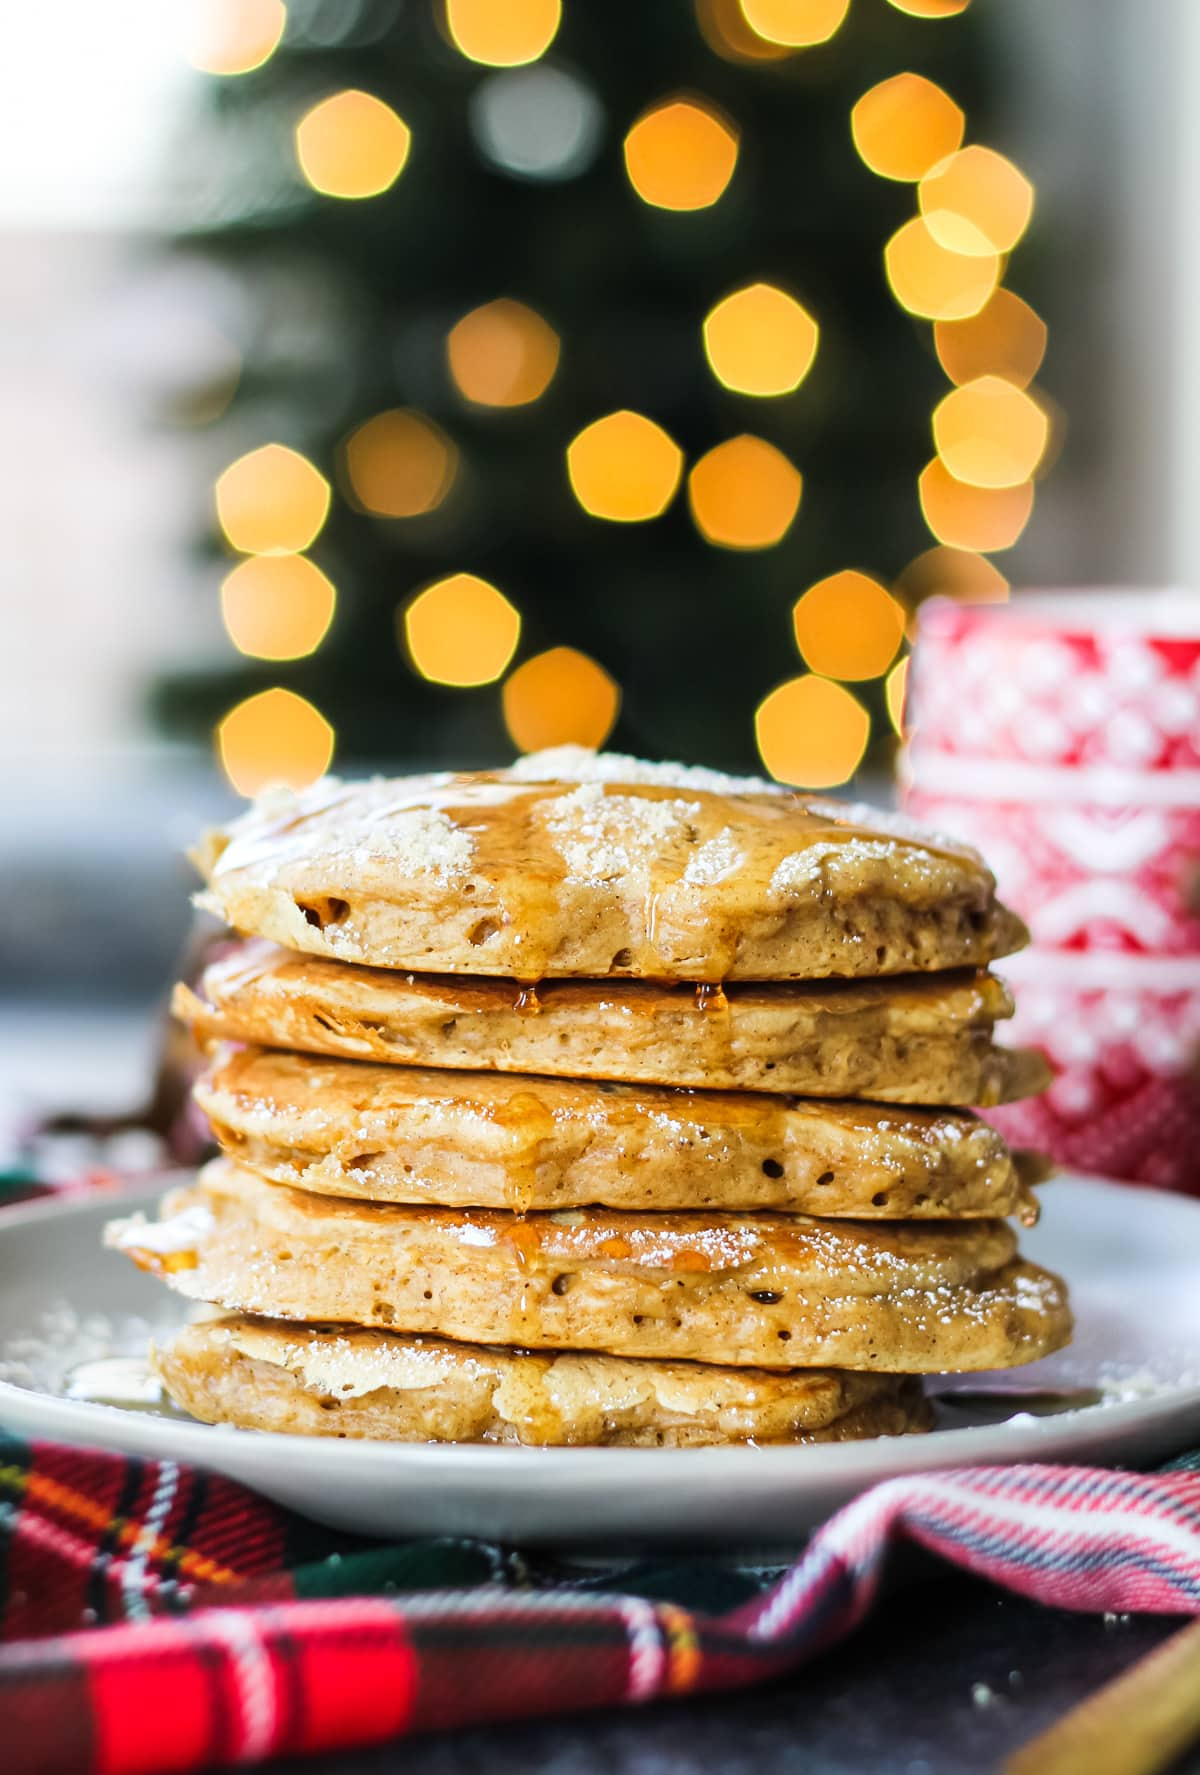 a stack of Gingerbread Pancakes against a background of Bokeh light